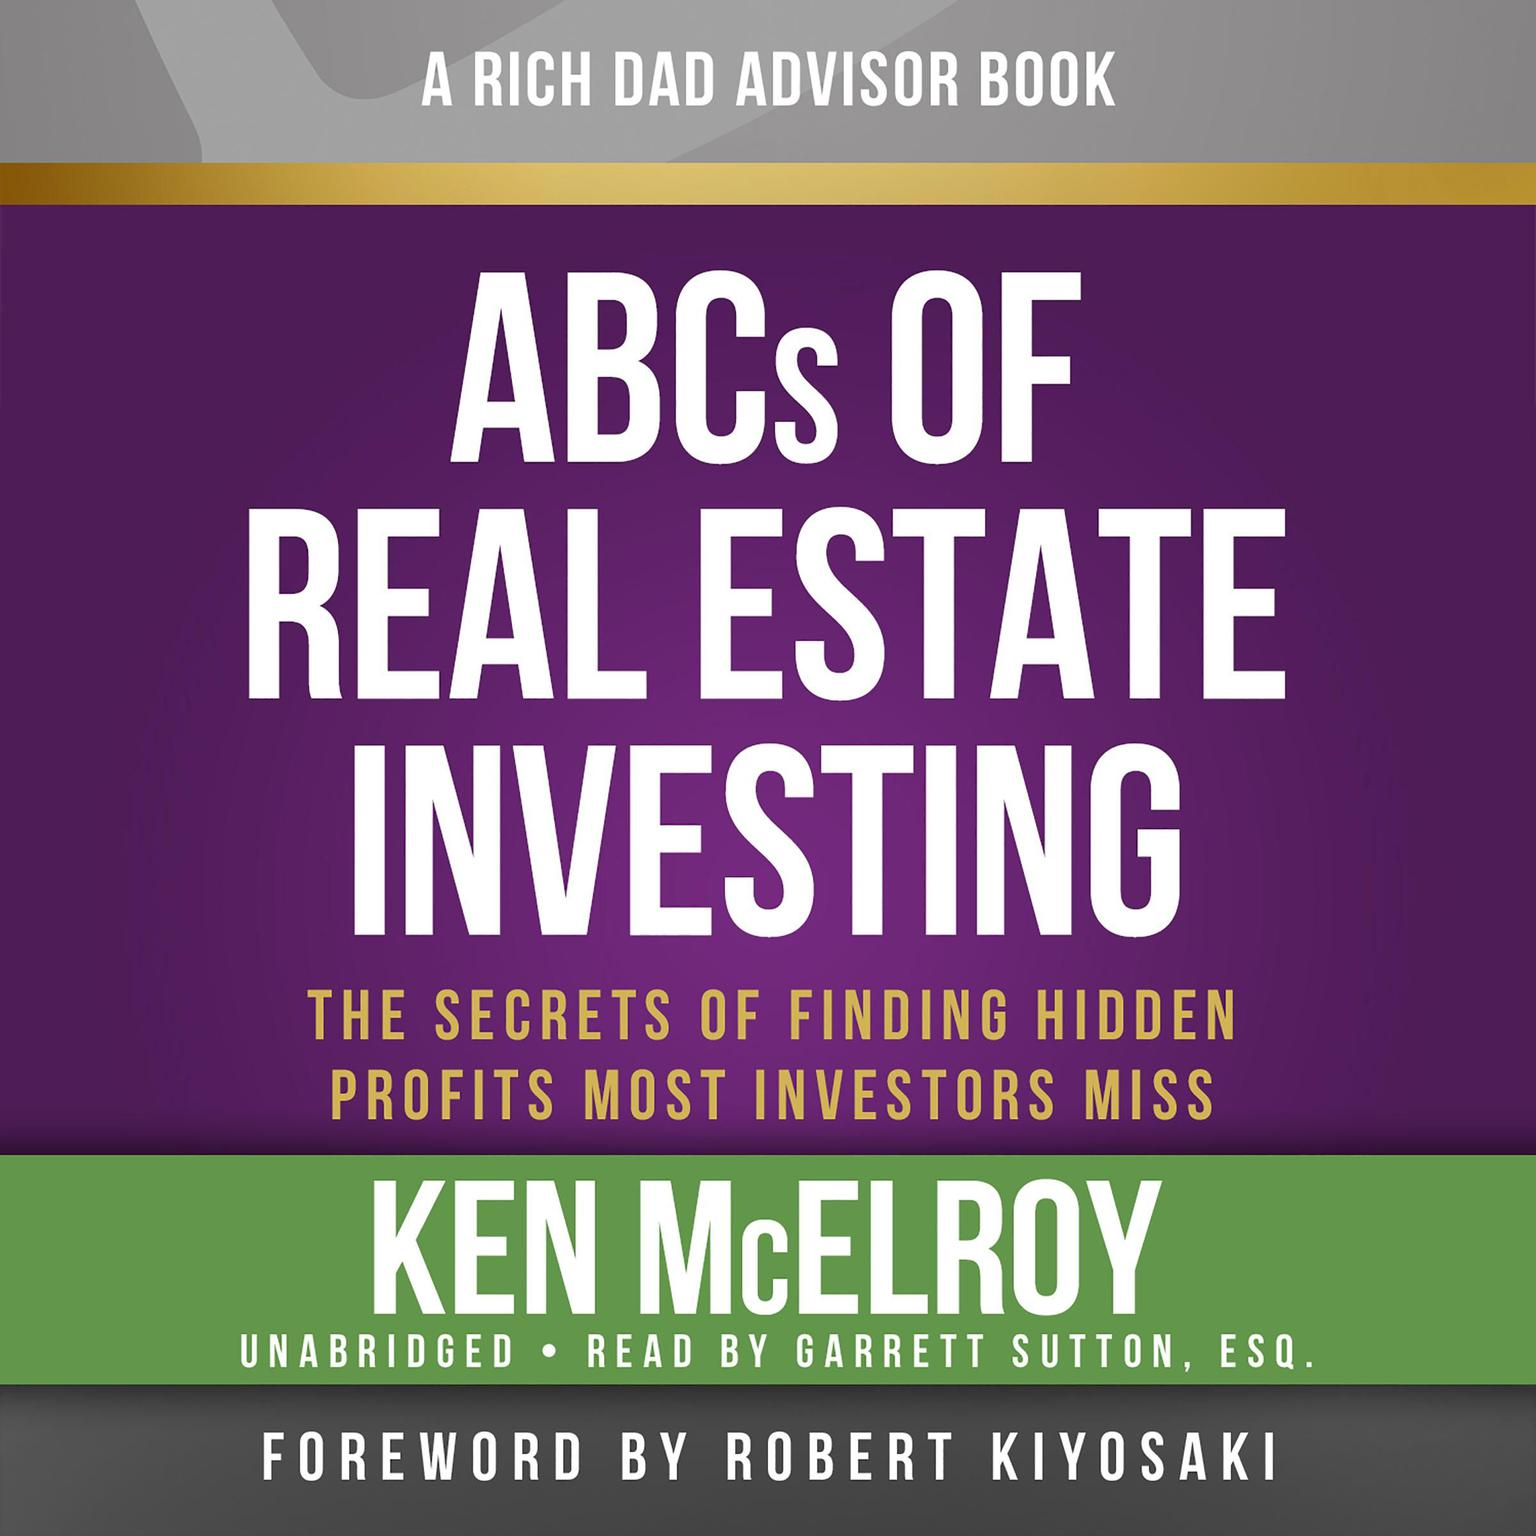 Printable The ABCs of Real Estate Investing: The Secrets of Finding Hidden Profits Most Investors Miss Audiobook Cover Art